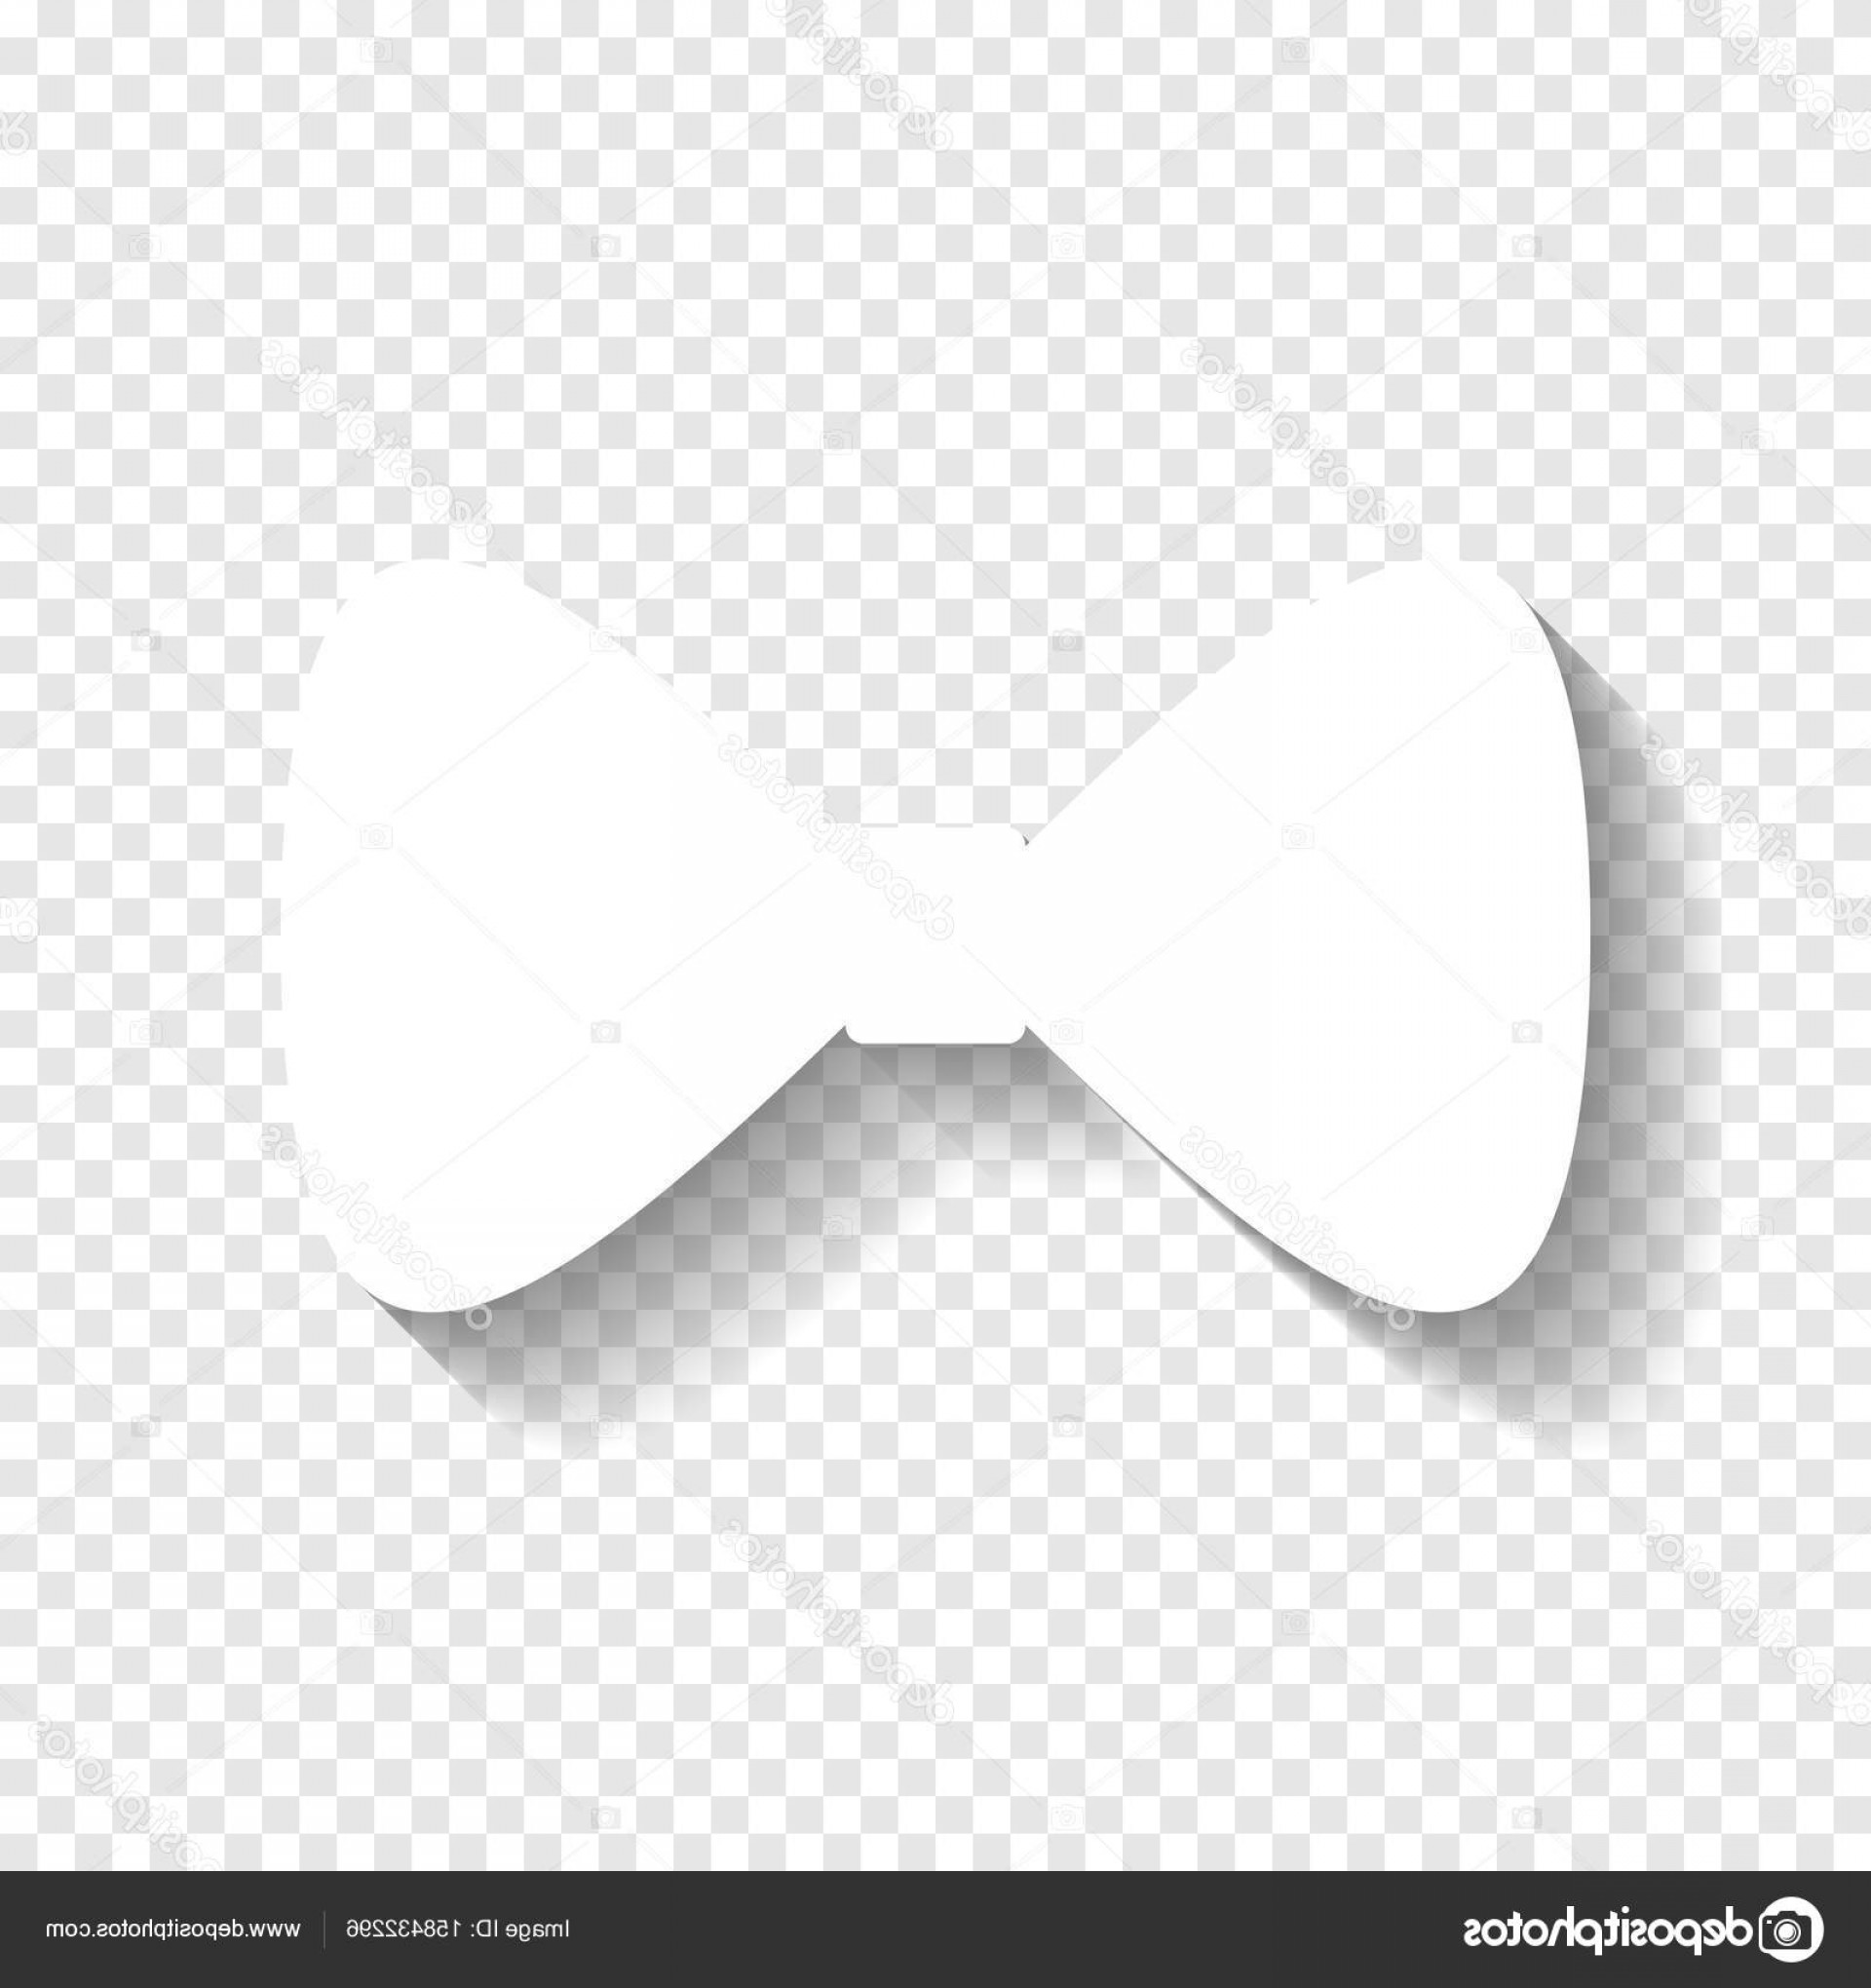 Bow Tie Vector Graphic Transparent: Stock Illustration Bow Tie Icon Vector White